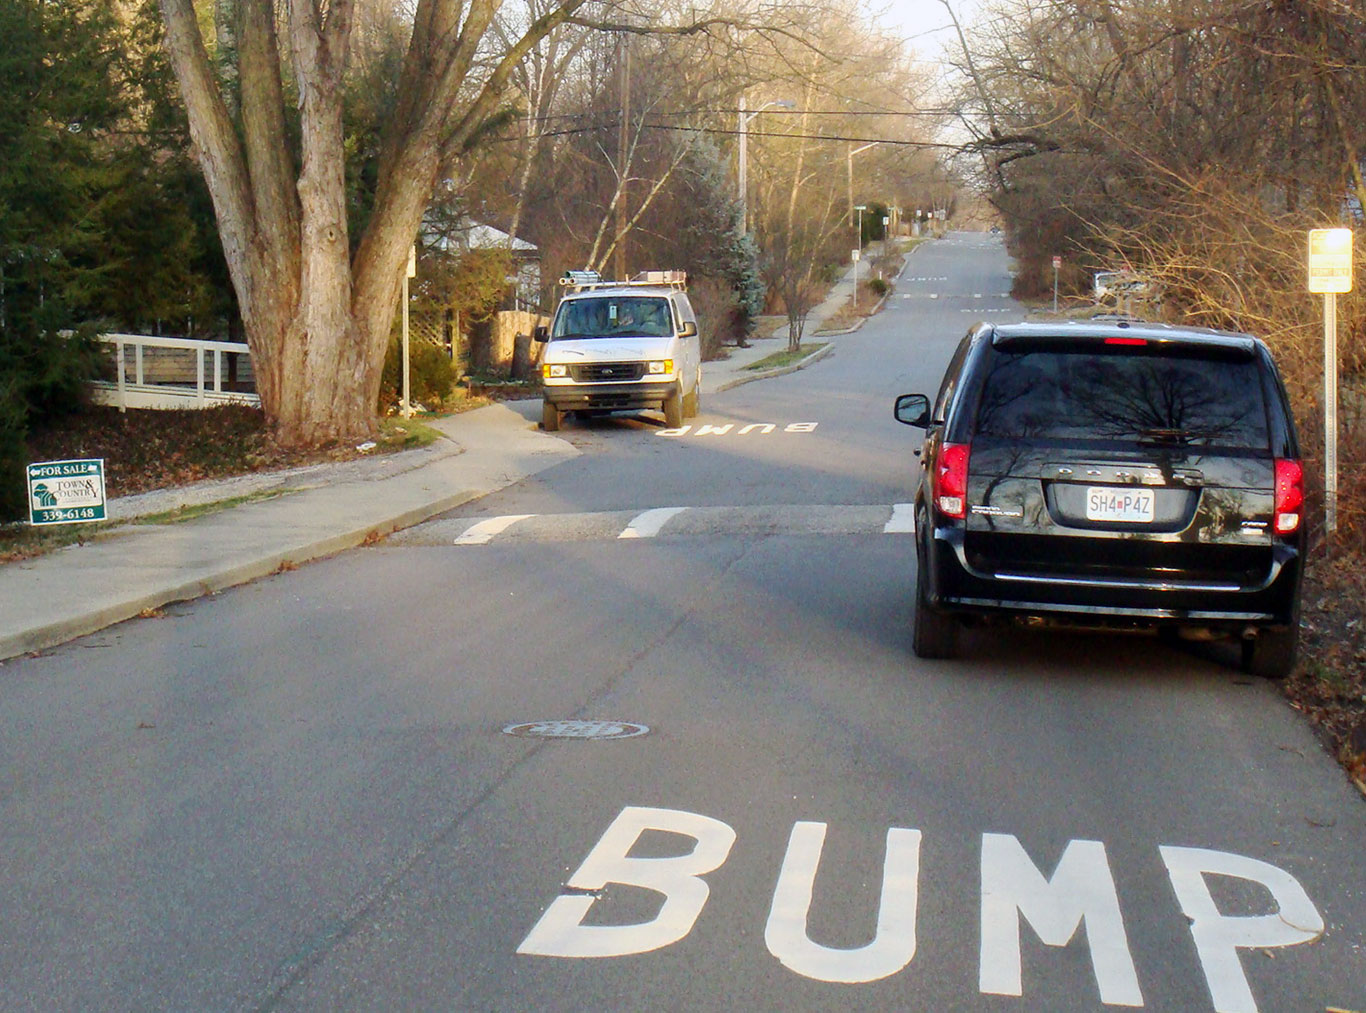 Q: How Do I Get Speed Bumps on my Street?